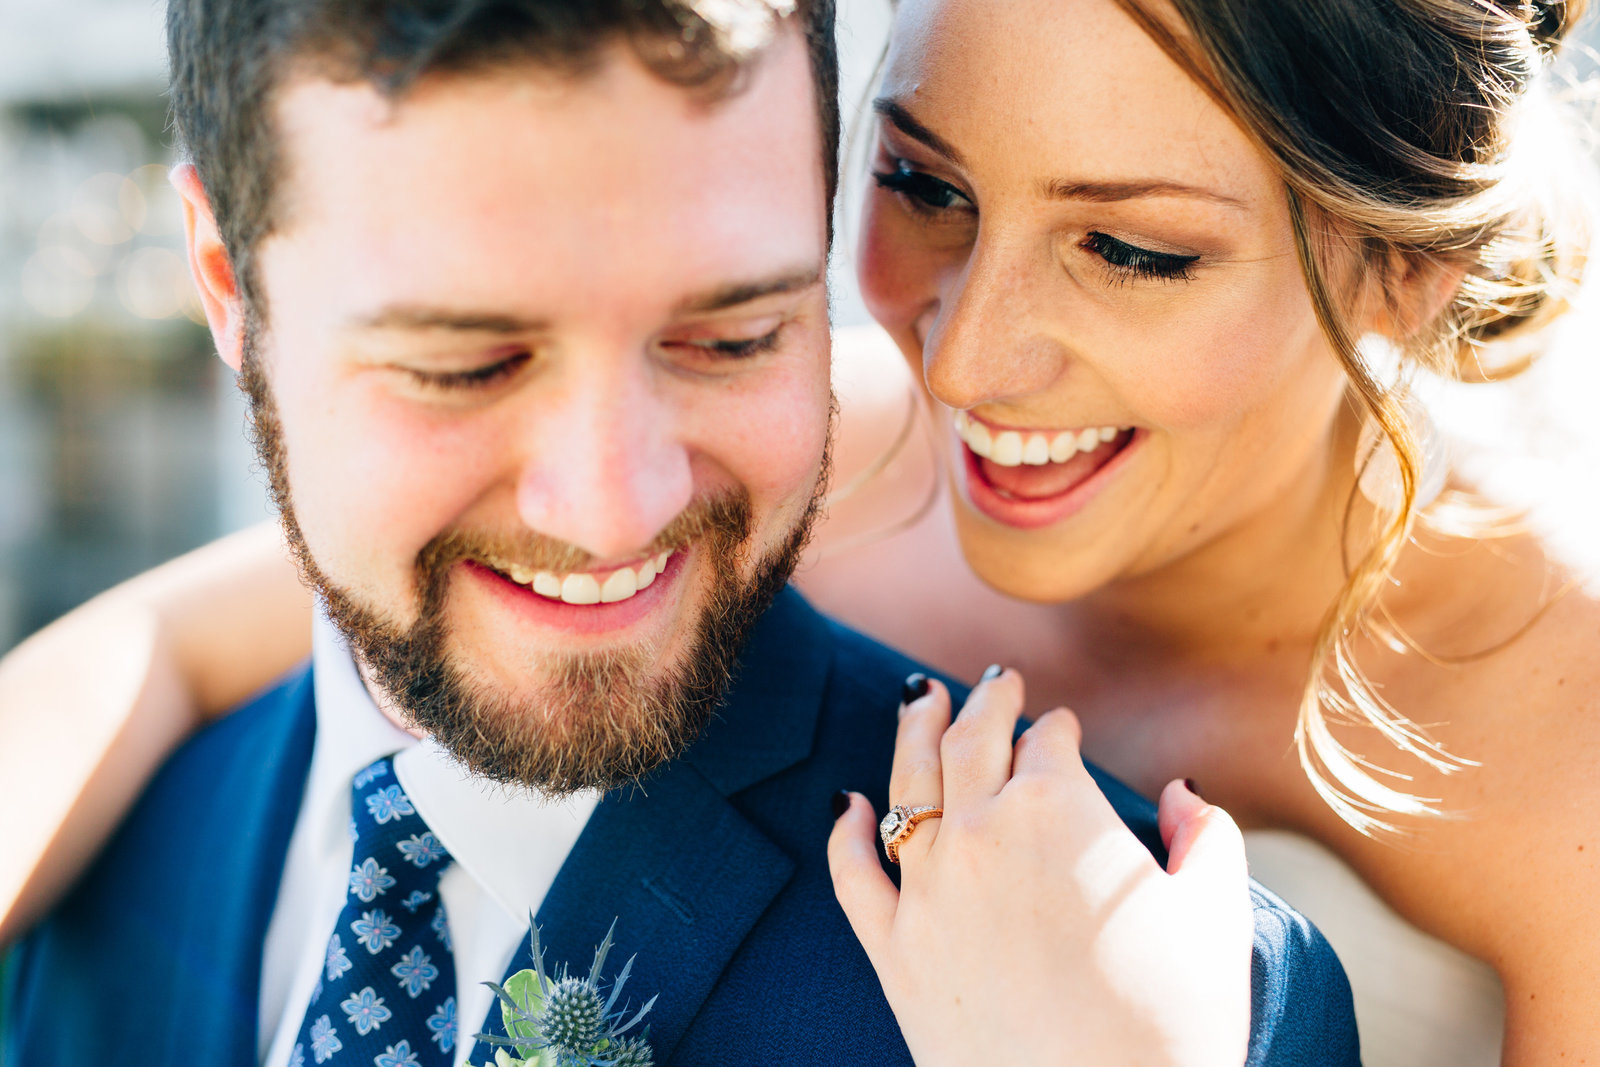 grand rapids wedding photographers 10496